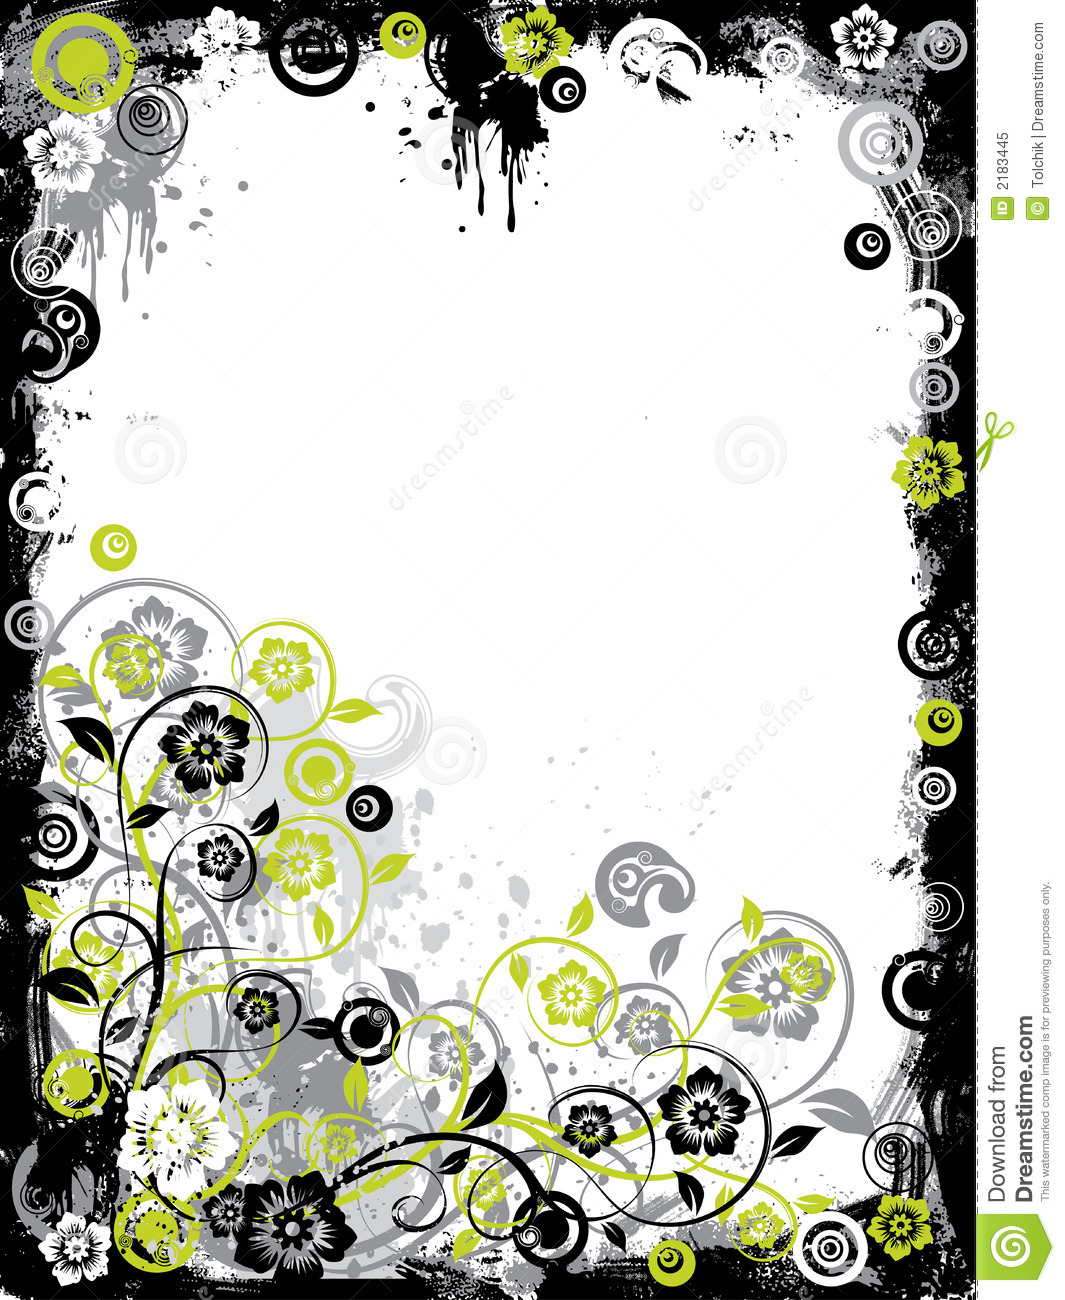 Royalty Free Stock Photo  Grunge floral border  vectorVector Floral Border